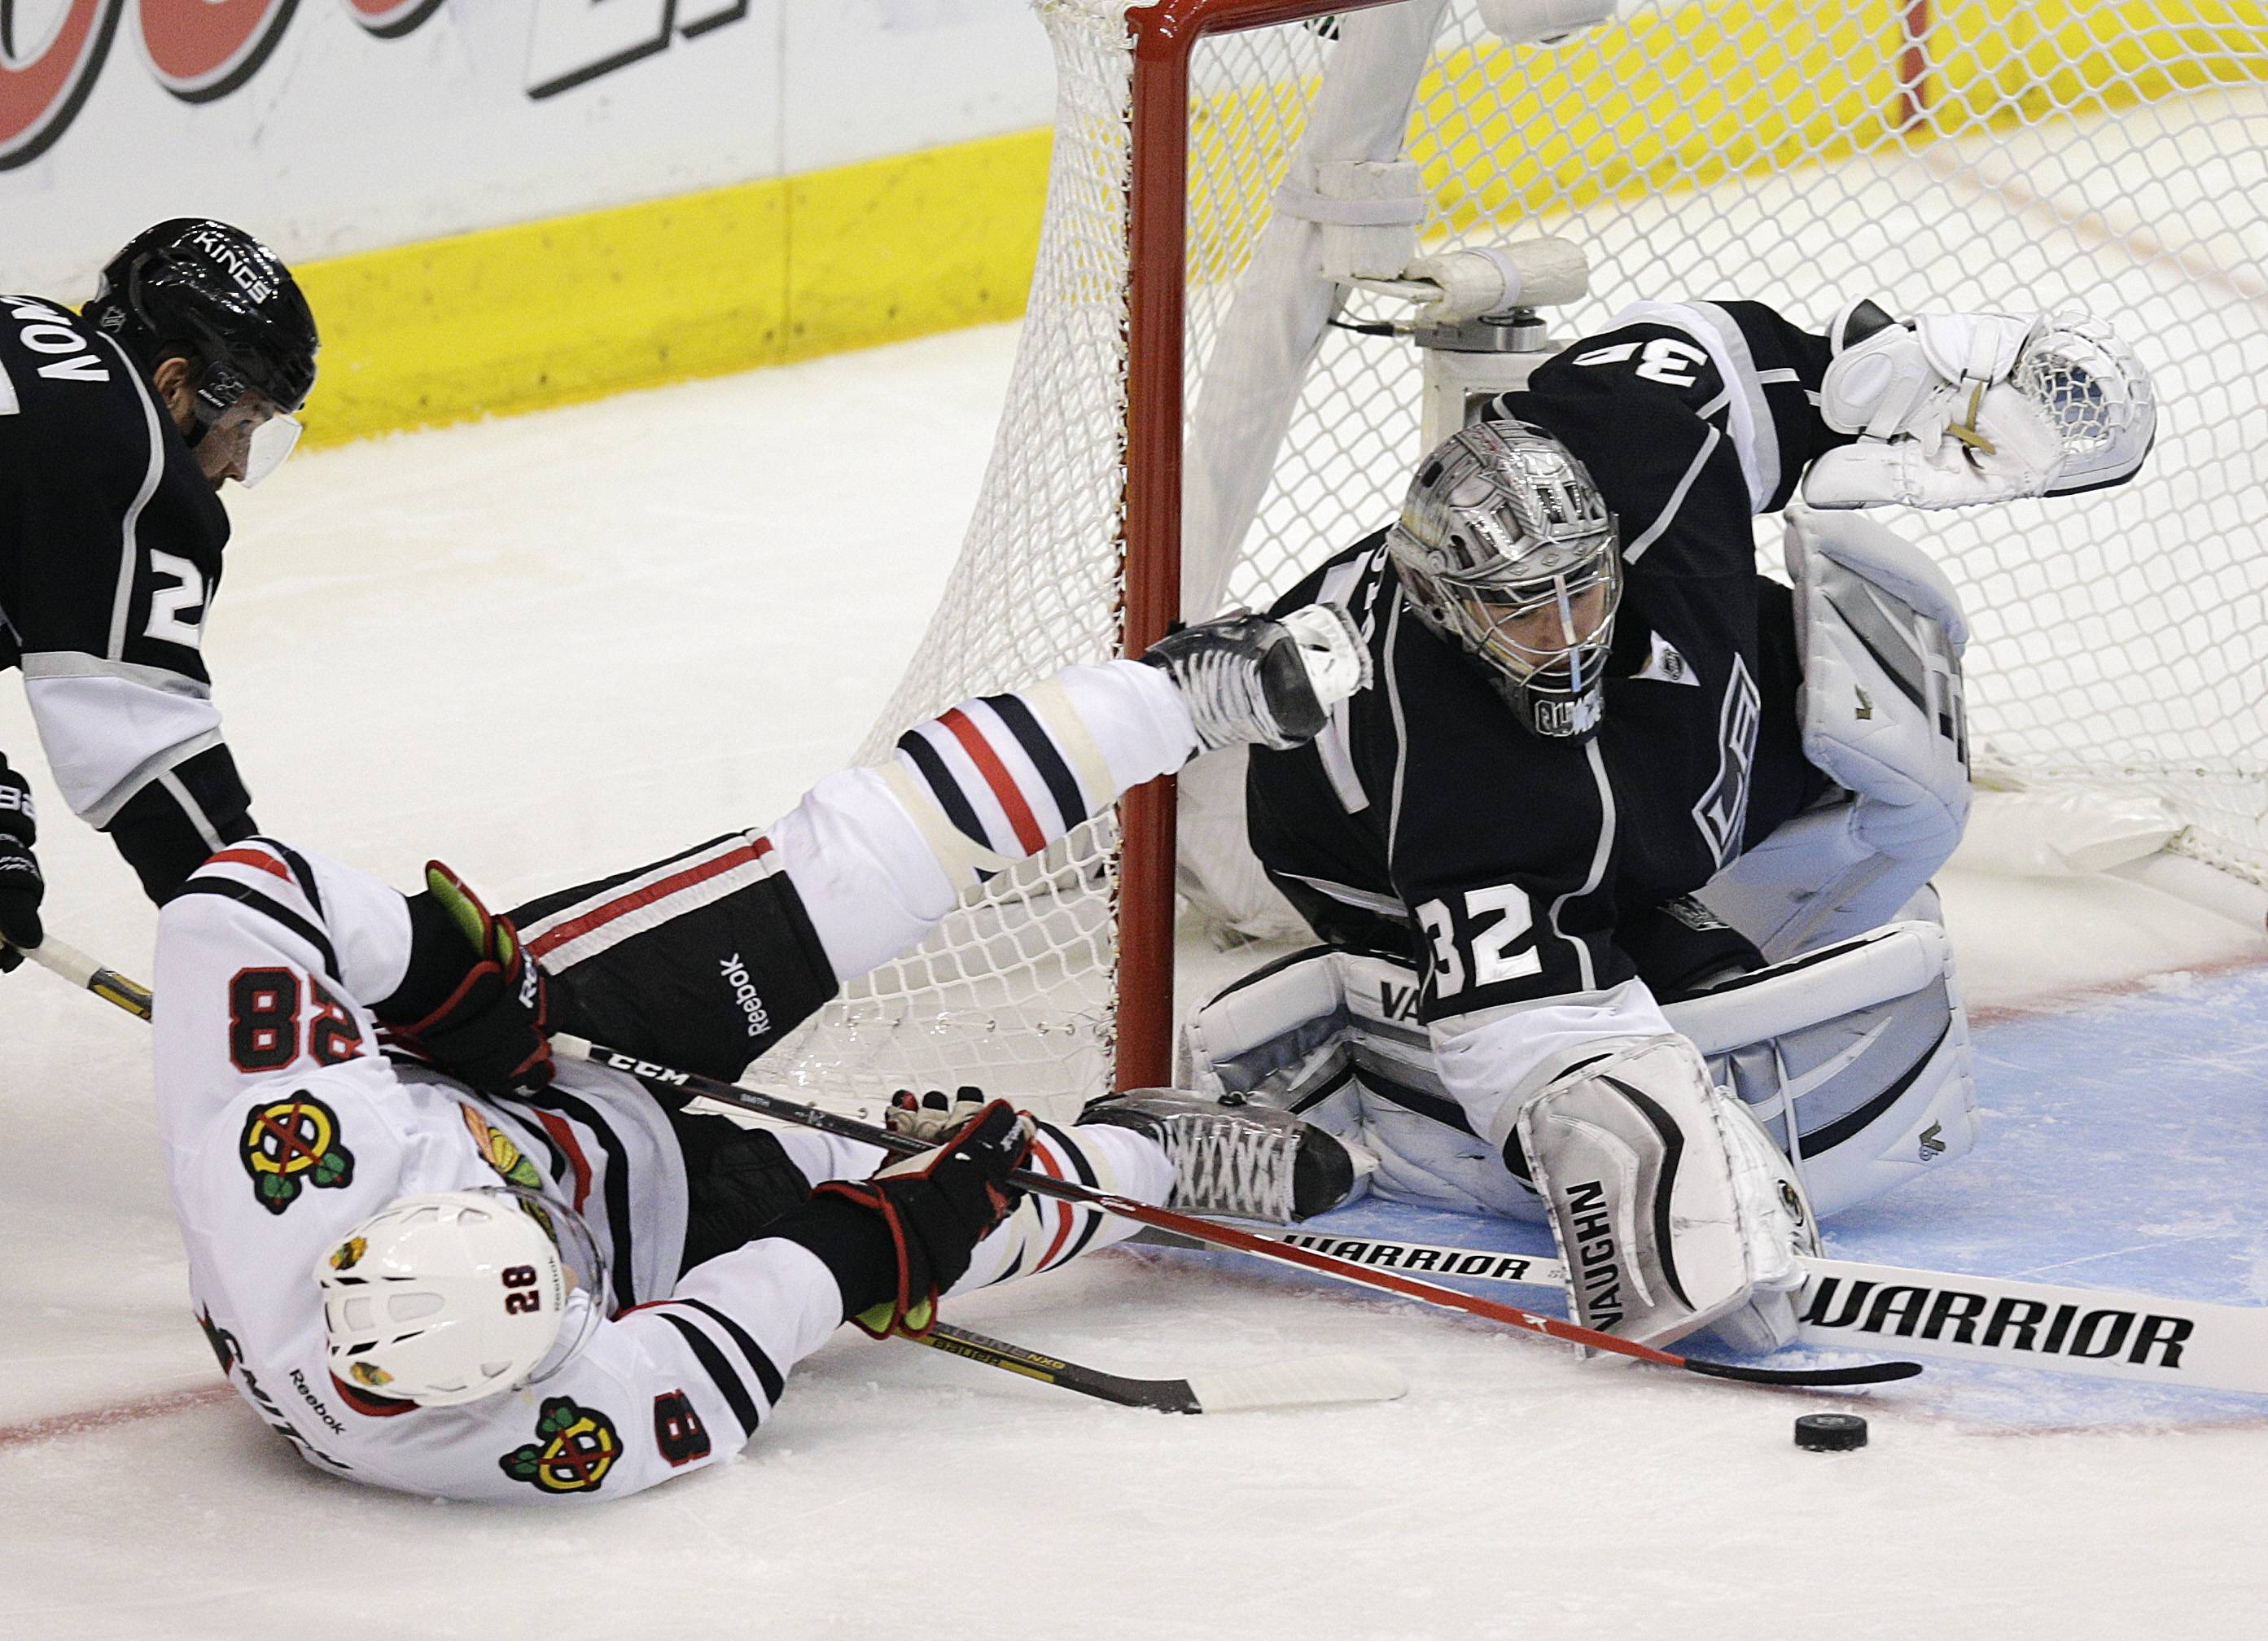 Los Angeles Kings goalie Jonathan Quick, right, stops a shot by Chicago Blackhawks' Ben Smith during the second period of Game 4 of the Western Conference finals of the NHL hockey Stanley Cup playoffs on Monday, May 26, 2014, in Los Angeles.